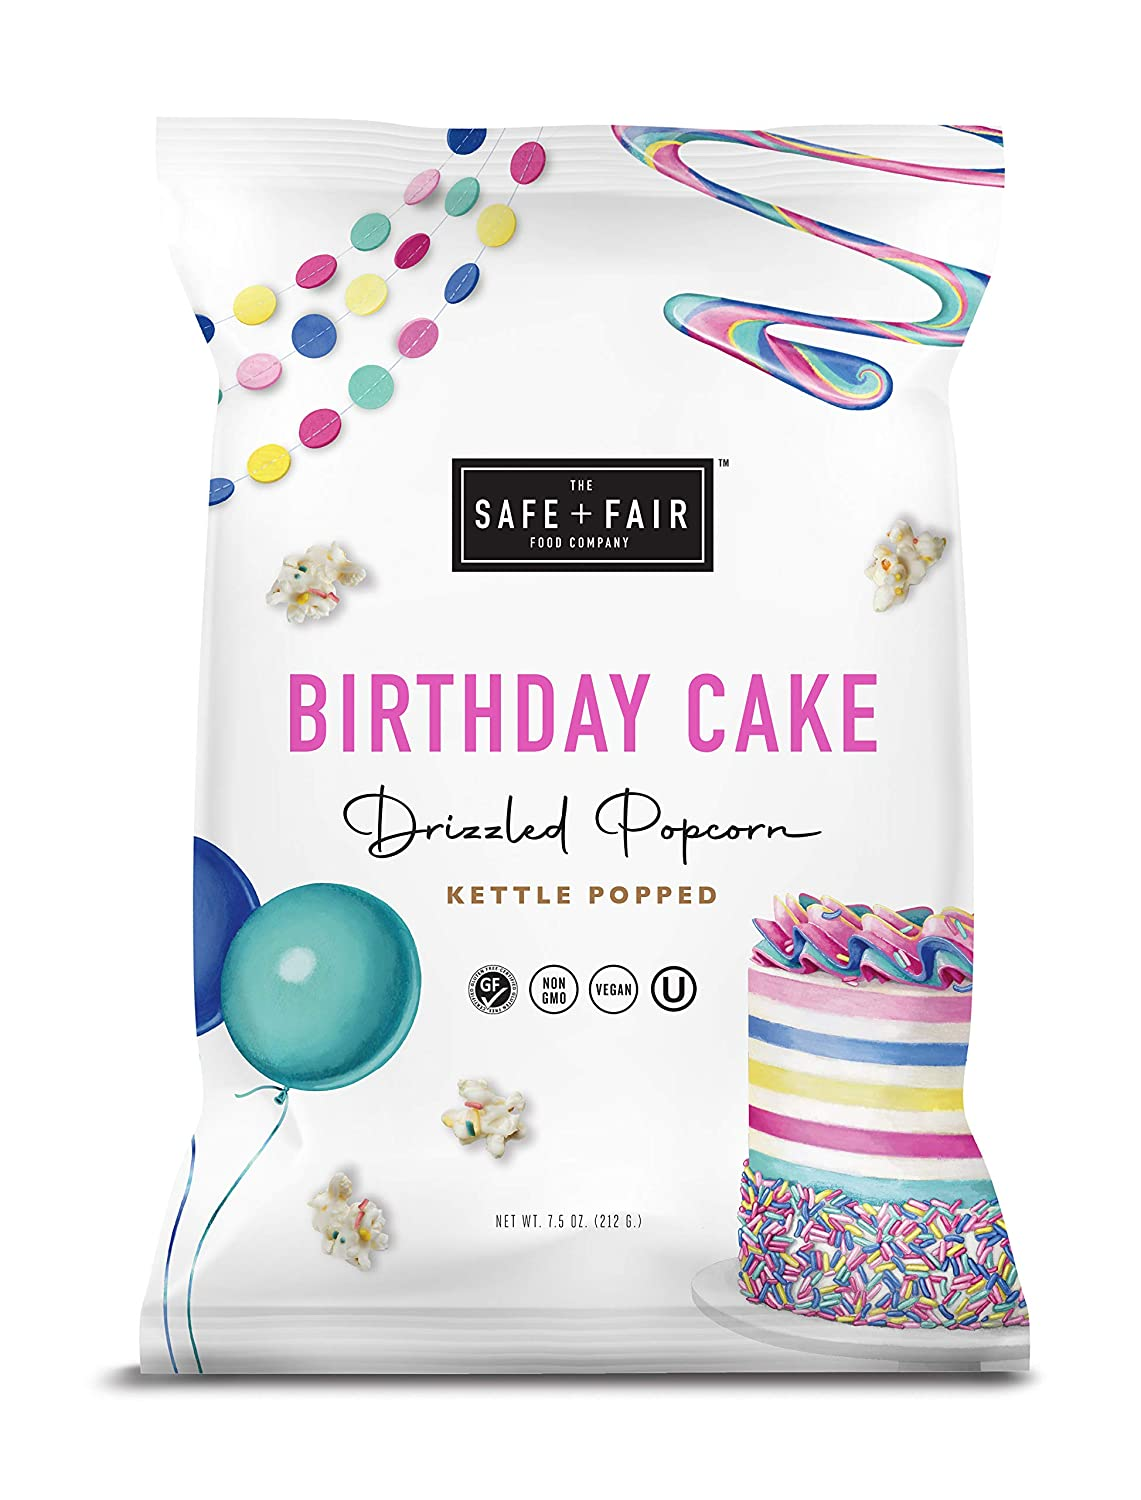 Birthday Cake gift Drizzled Popcorn 5 Count 55% OFF 7.5oz